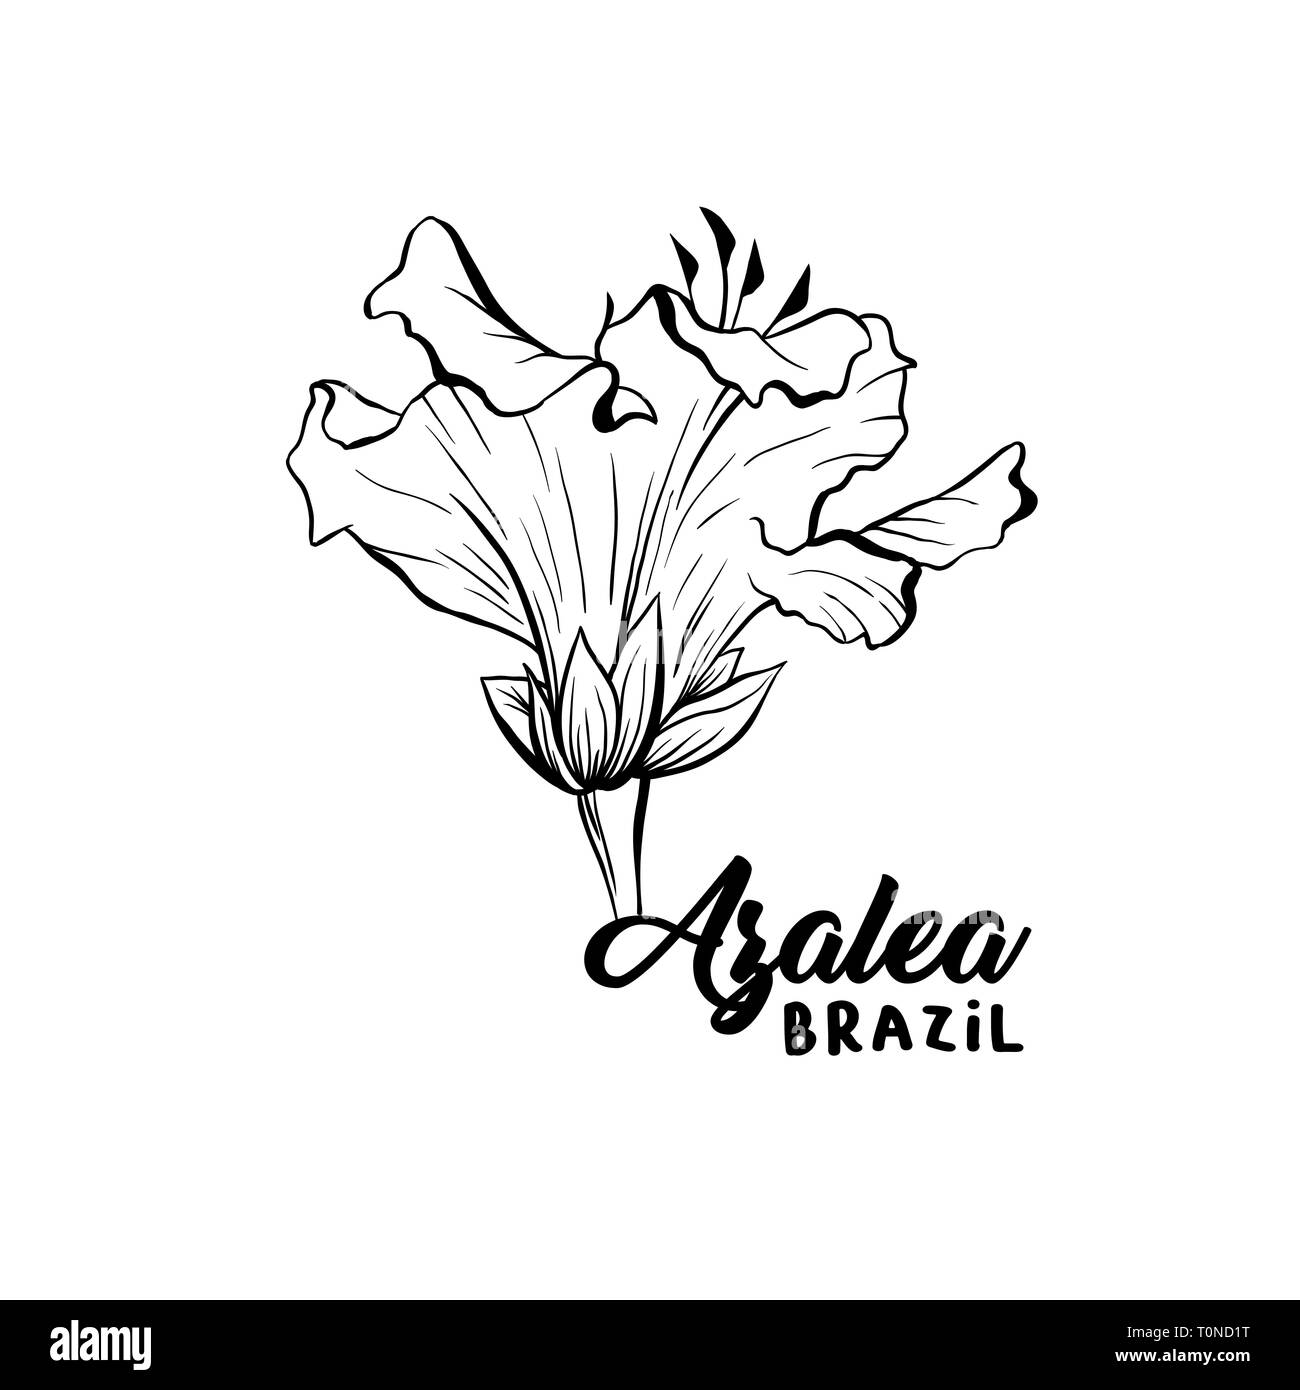 Azalea, ericaceae flowers hand drawn illustration. Beautiful blooming plant ink pen sketch. Freehand outline floral blossom engraving. Greeting card monochrome isolated design element - Stock Vector